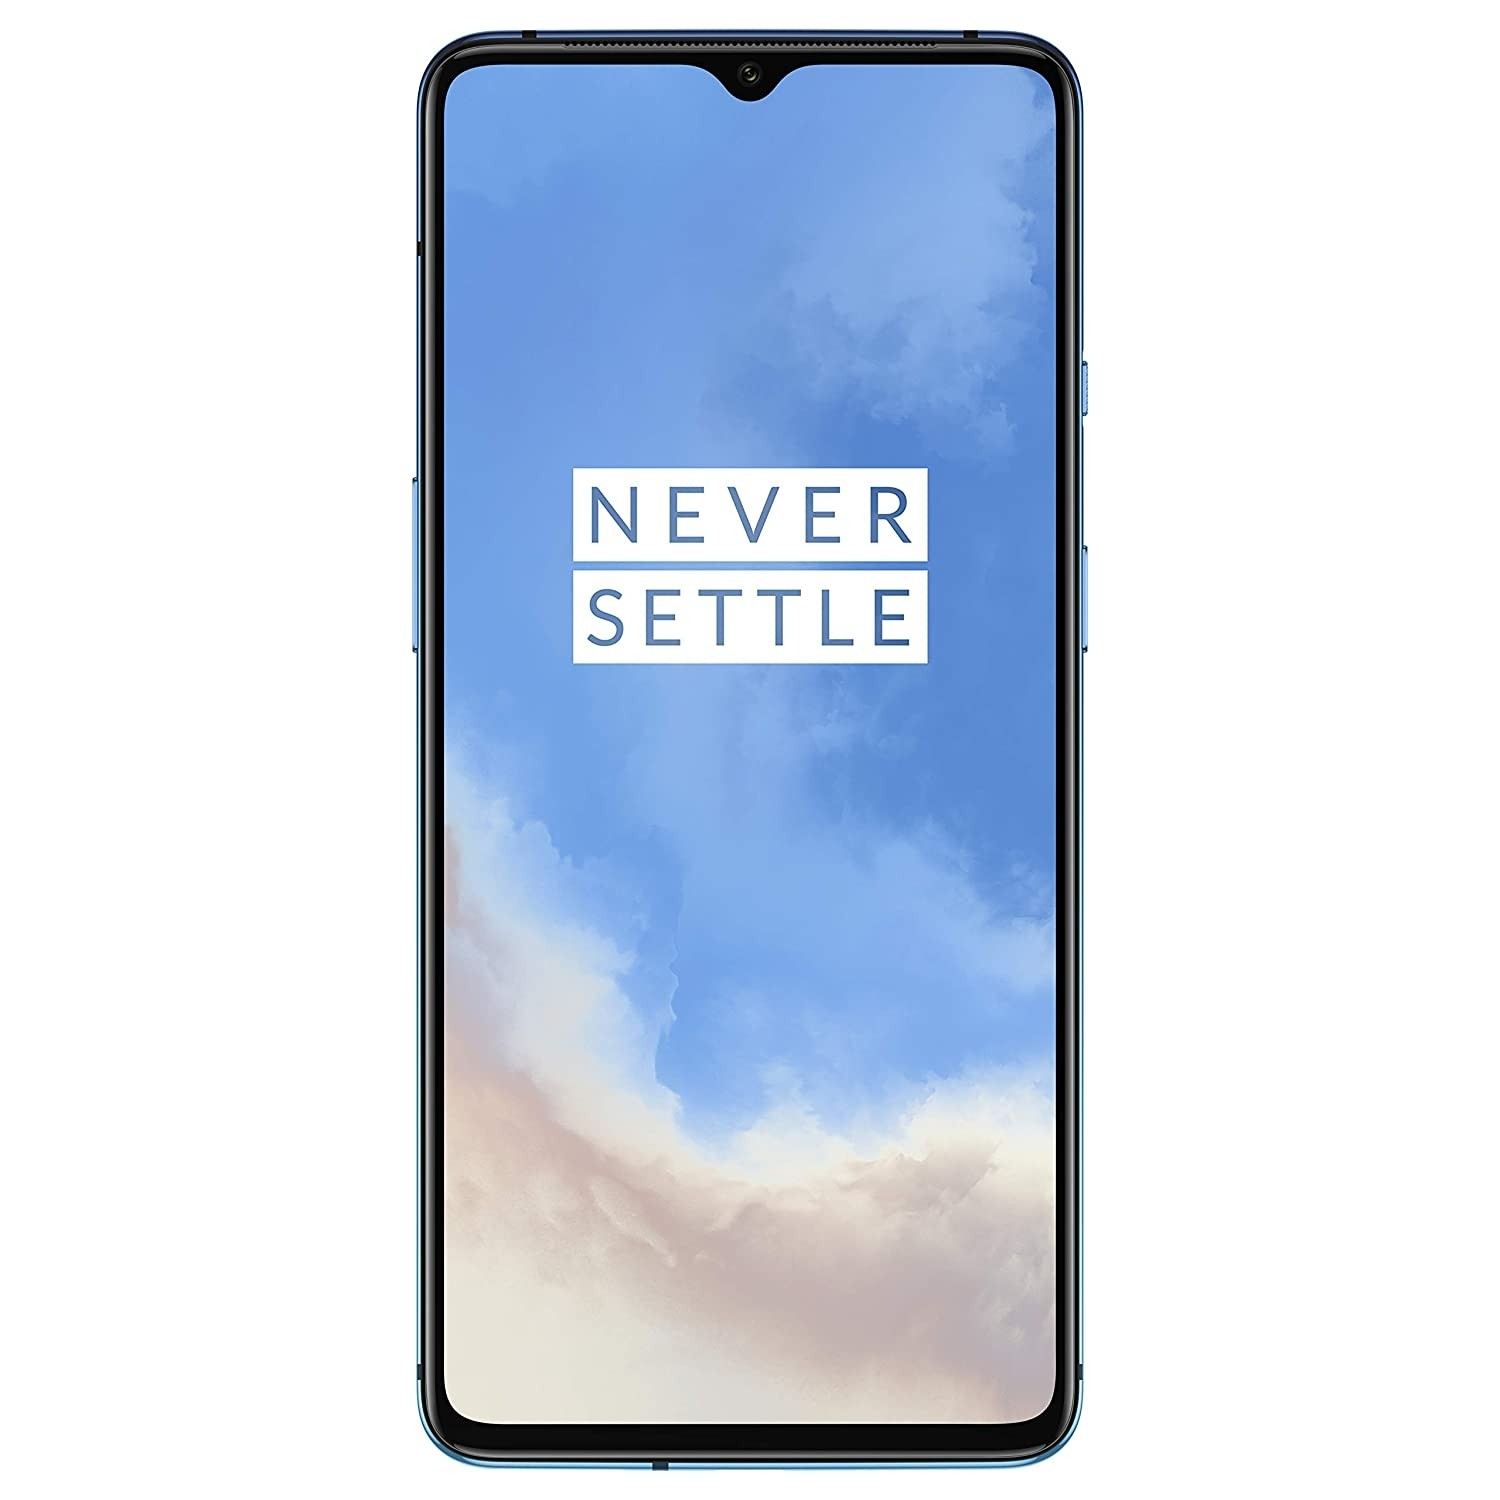 Refurbished laptops & desktops - OnePlus 7T (Glacier Blue, 8GB RAM, 256GB Storage)